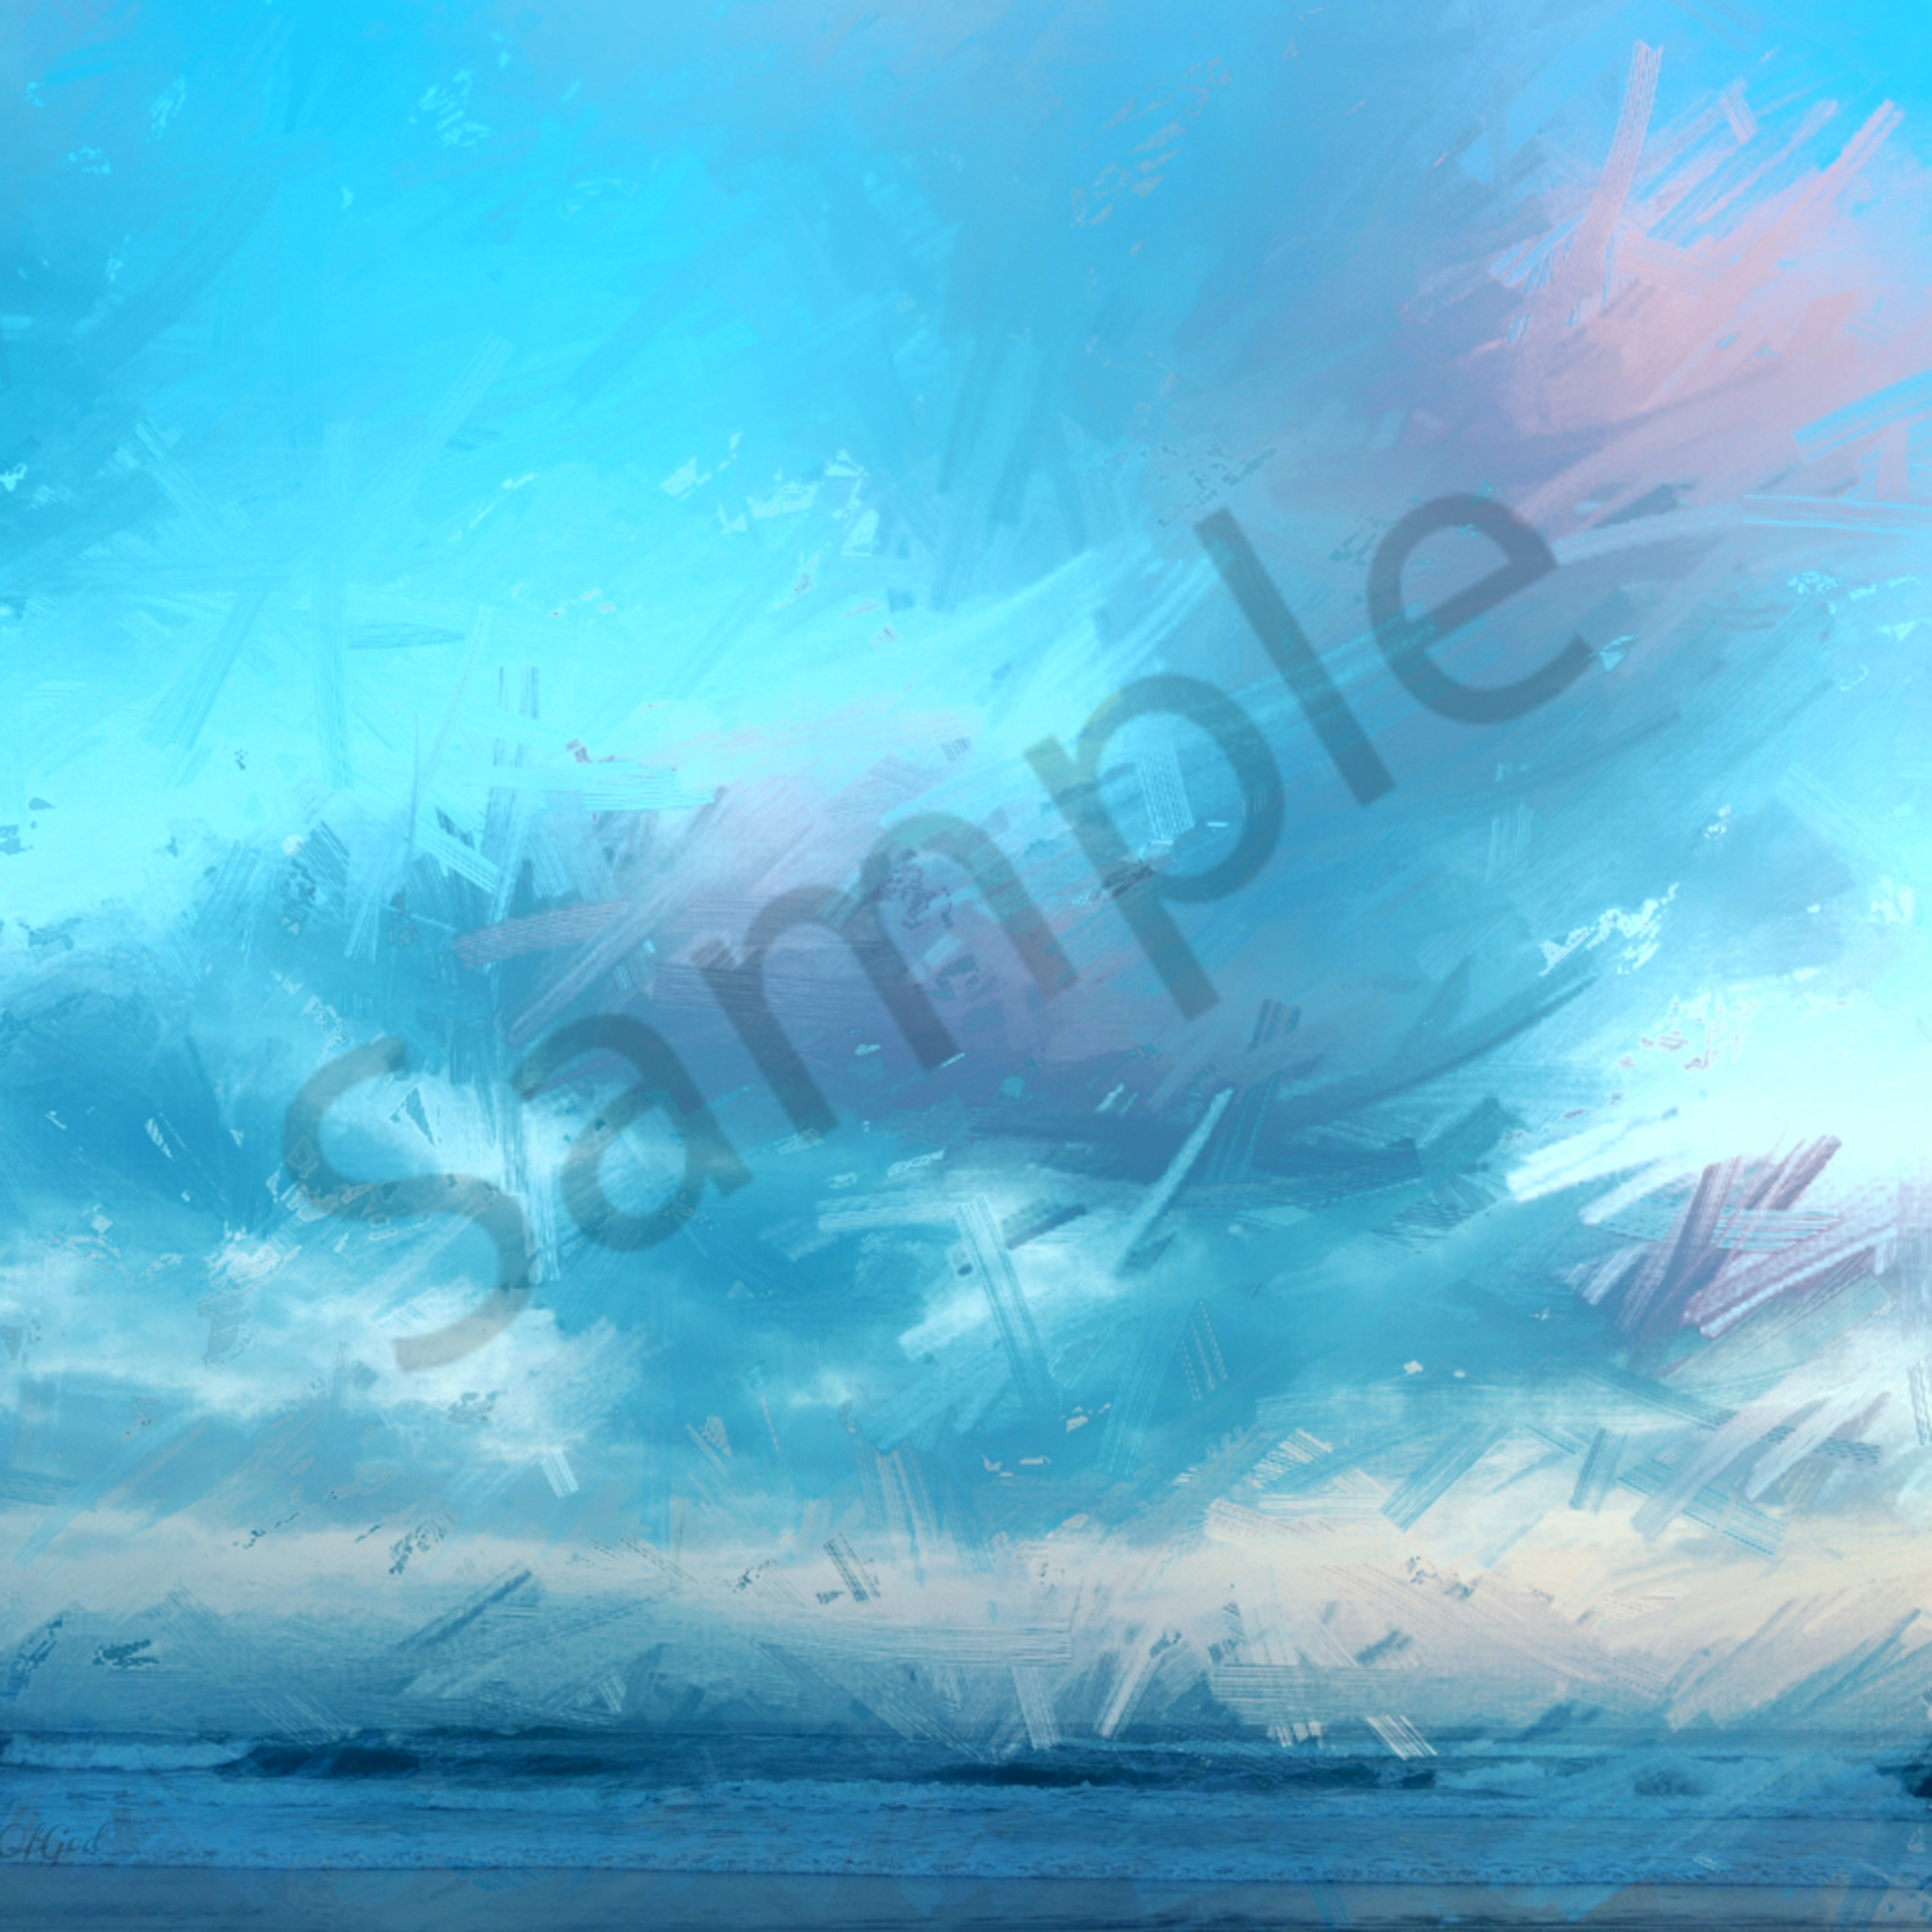 the heavens are high above the earth   0020 abstract clouds and waves enlight27   art4theglryofgod fxinrm